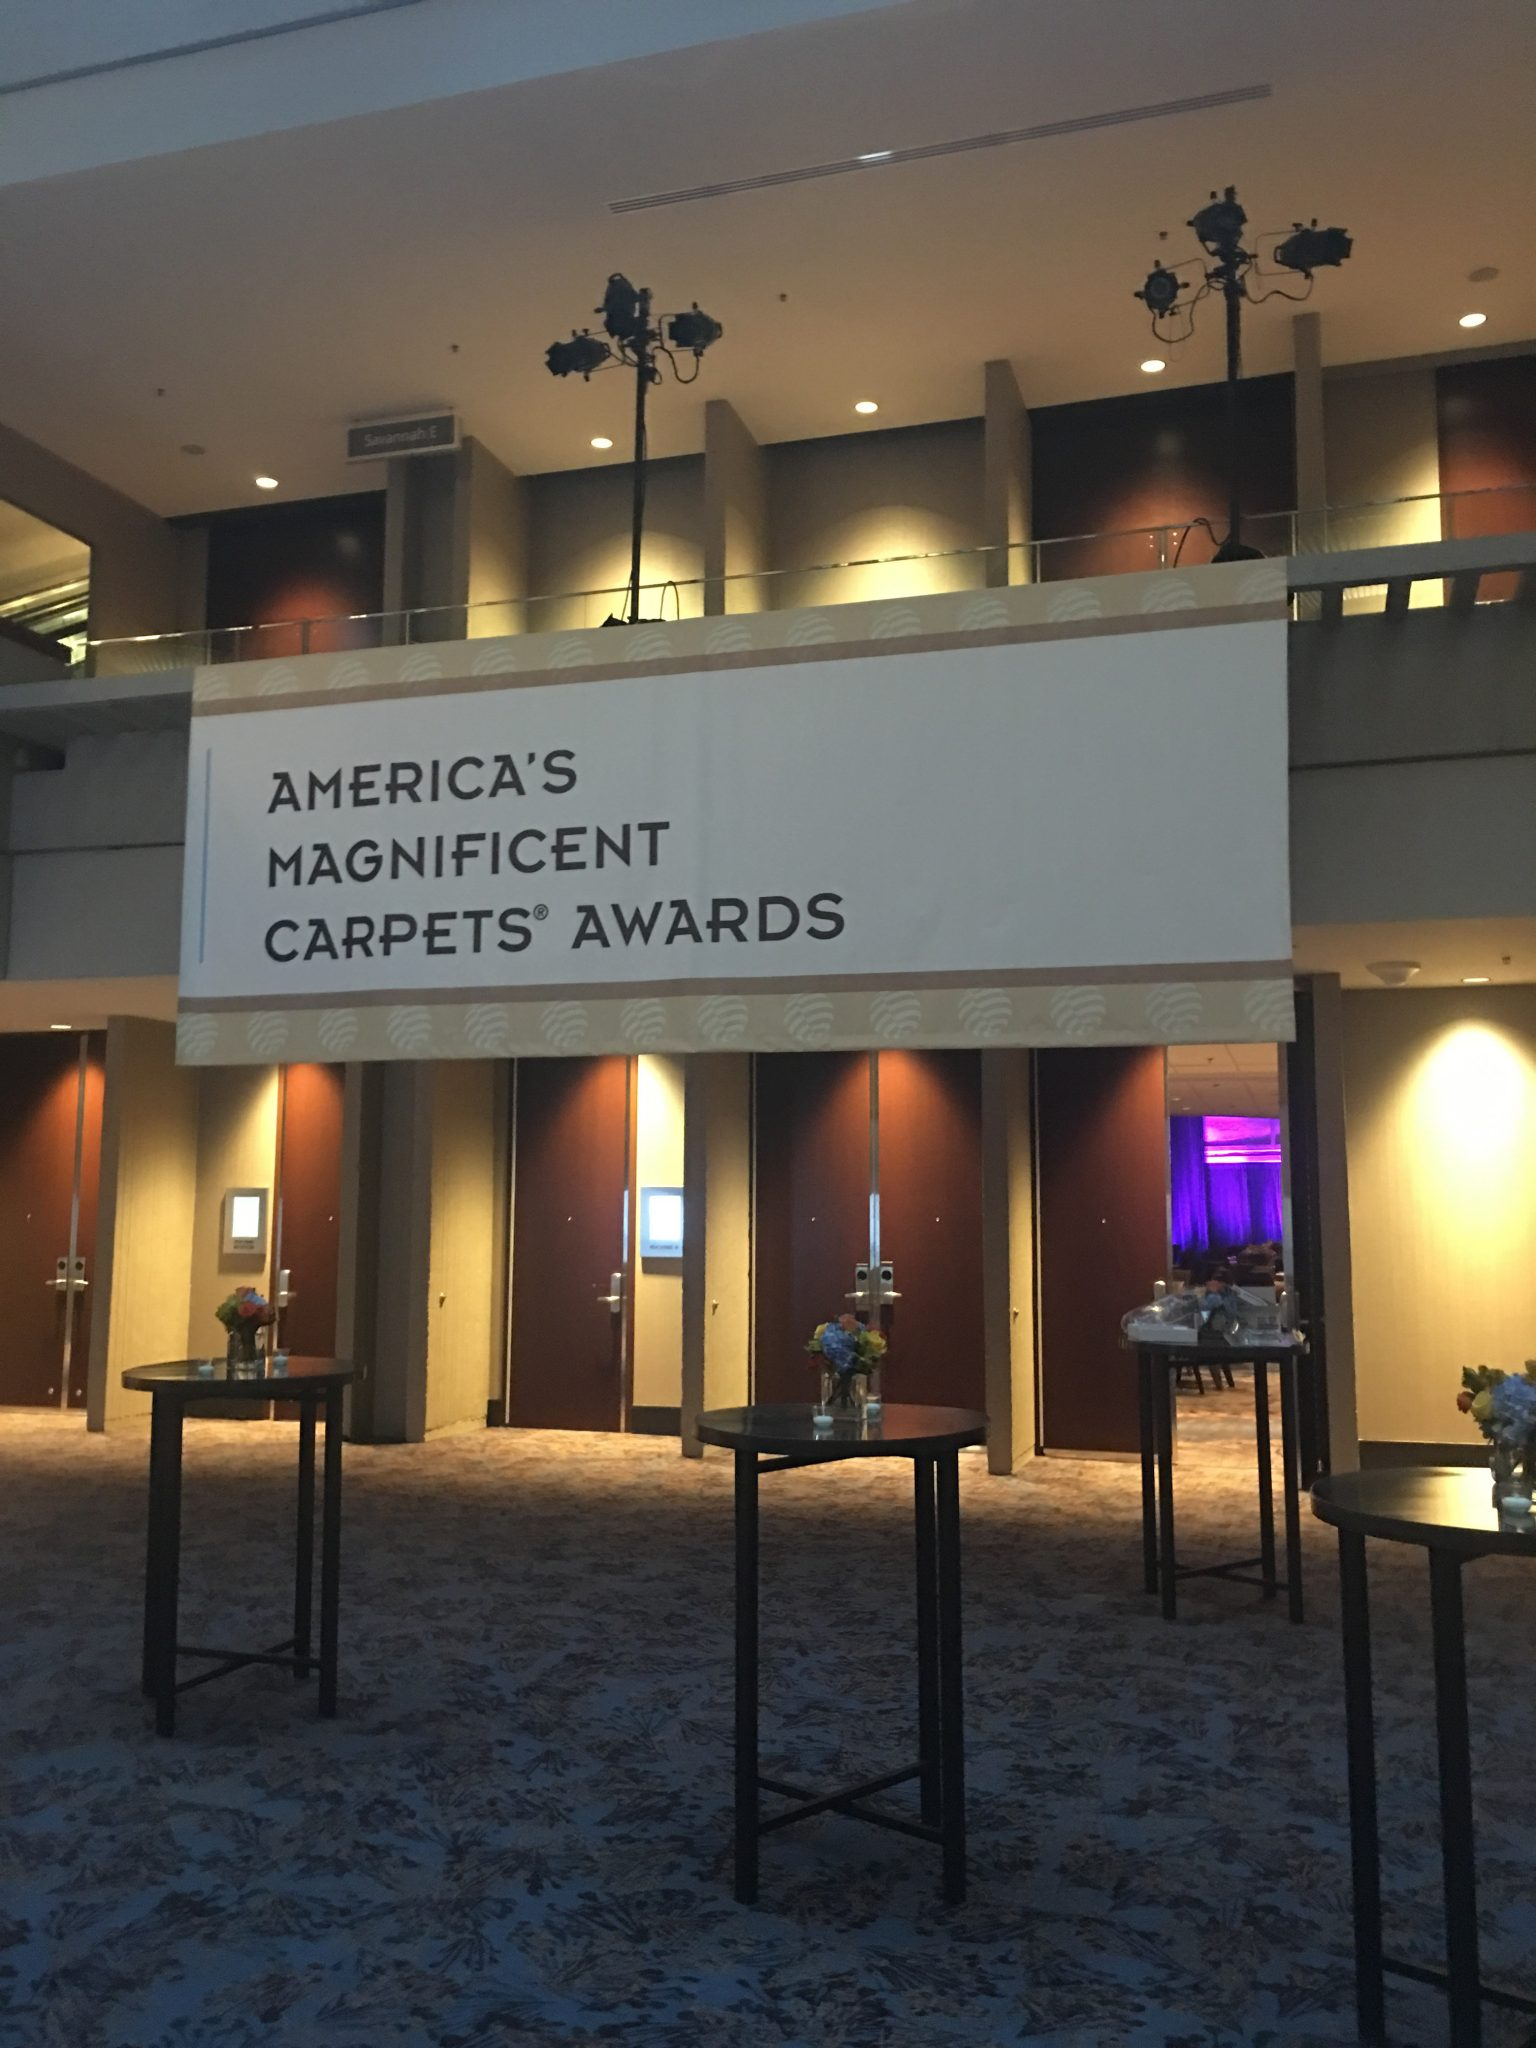 Waiting On The Amca America S Magnificent Carpet Awards